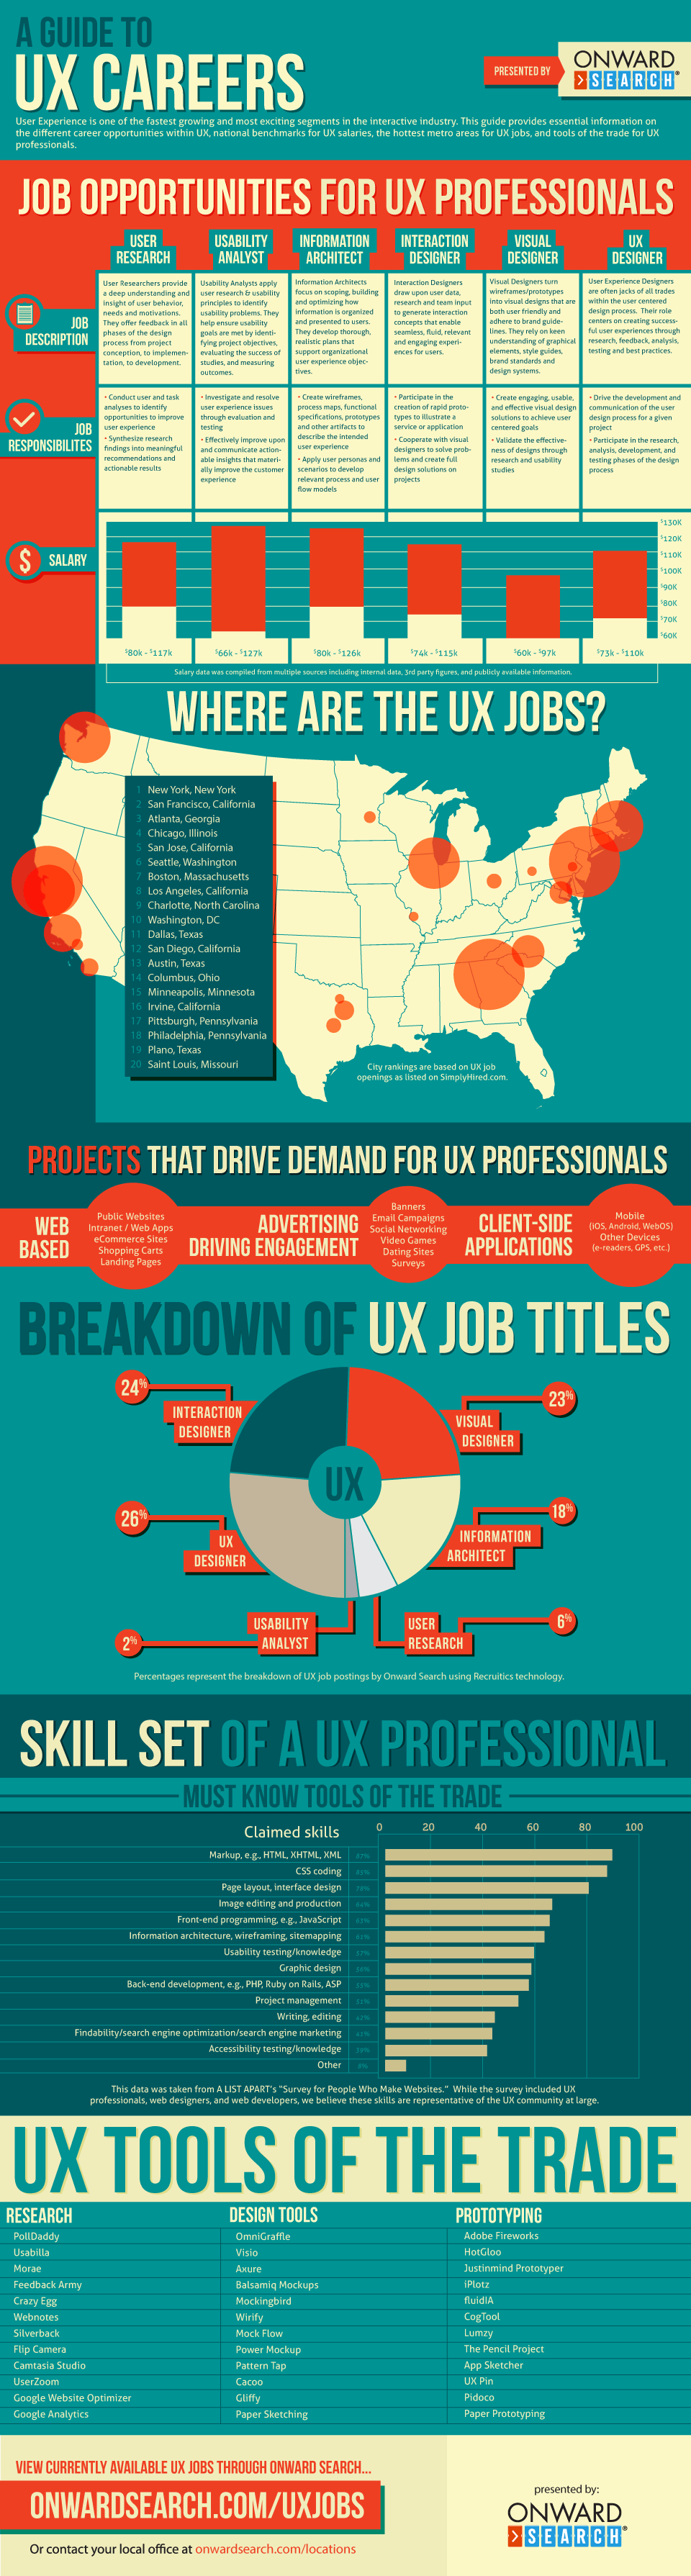 ux careers guide onward search a guide to ux jobs